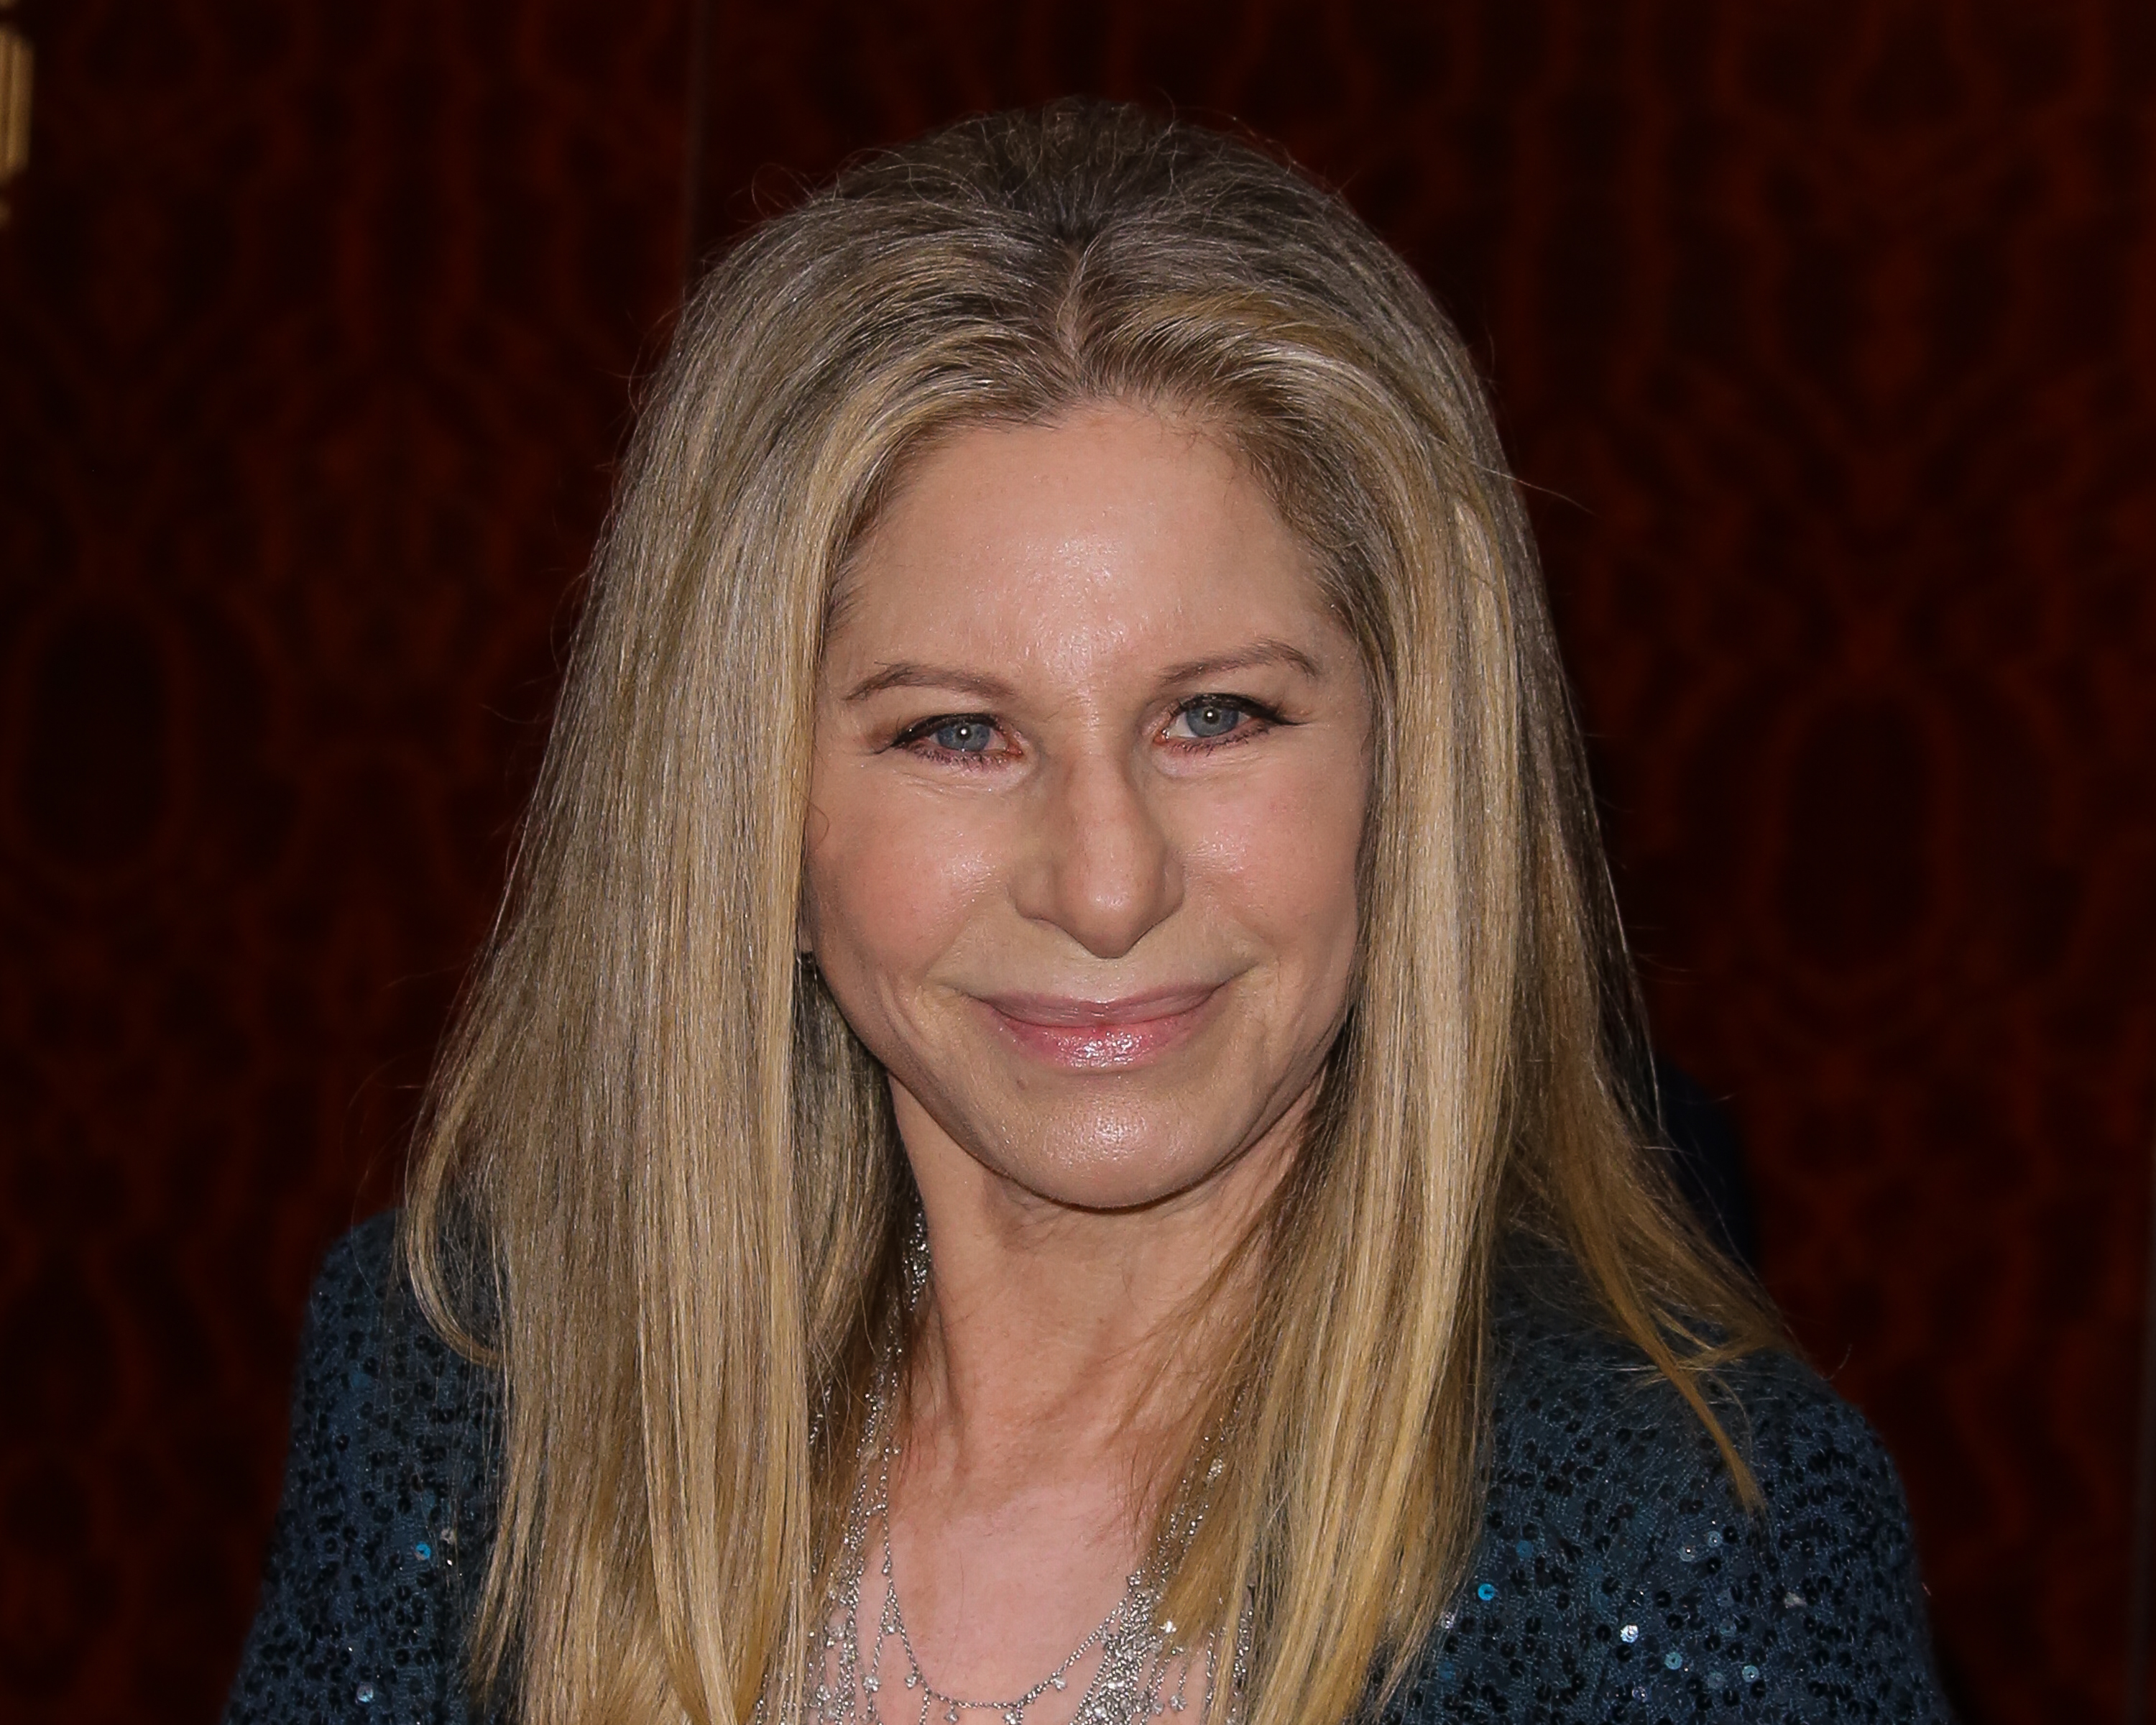 Actress Barbra Streisand attends the American Society Of Cinematographers 29th Annual Outstanding Achievement Awards at the Hyatt Regency Century Plaza on February 15, 2015 in Century City, California.